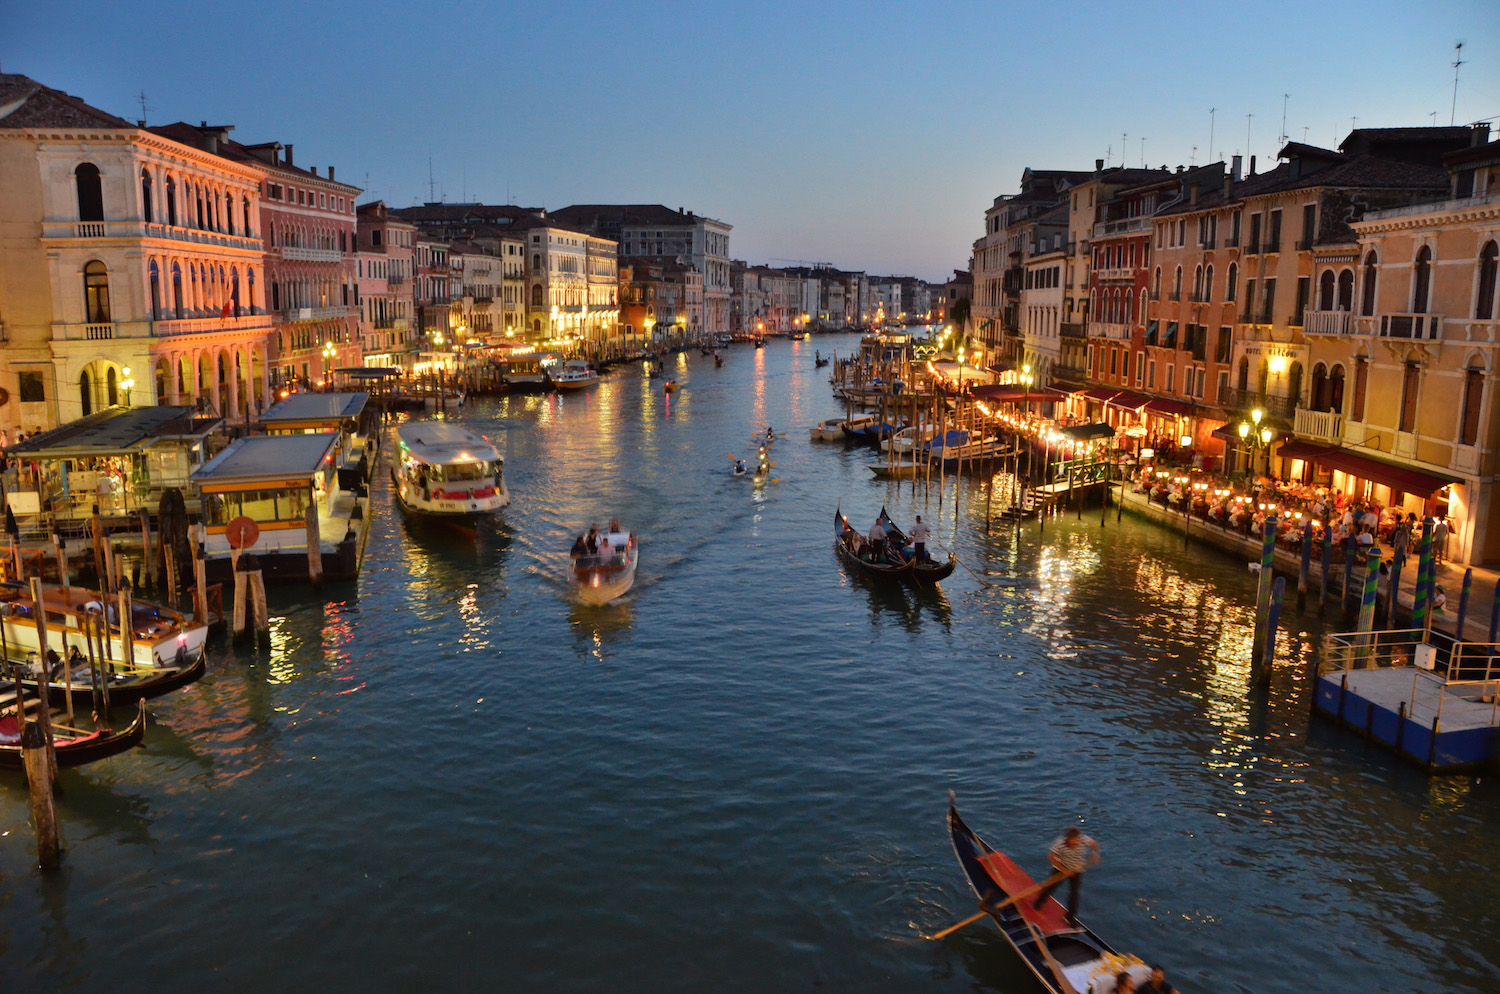 WorldTravelandTourism: venice italy best places to visit